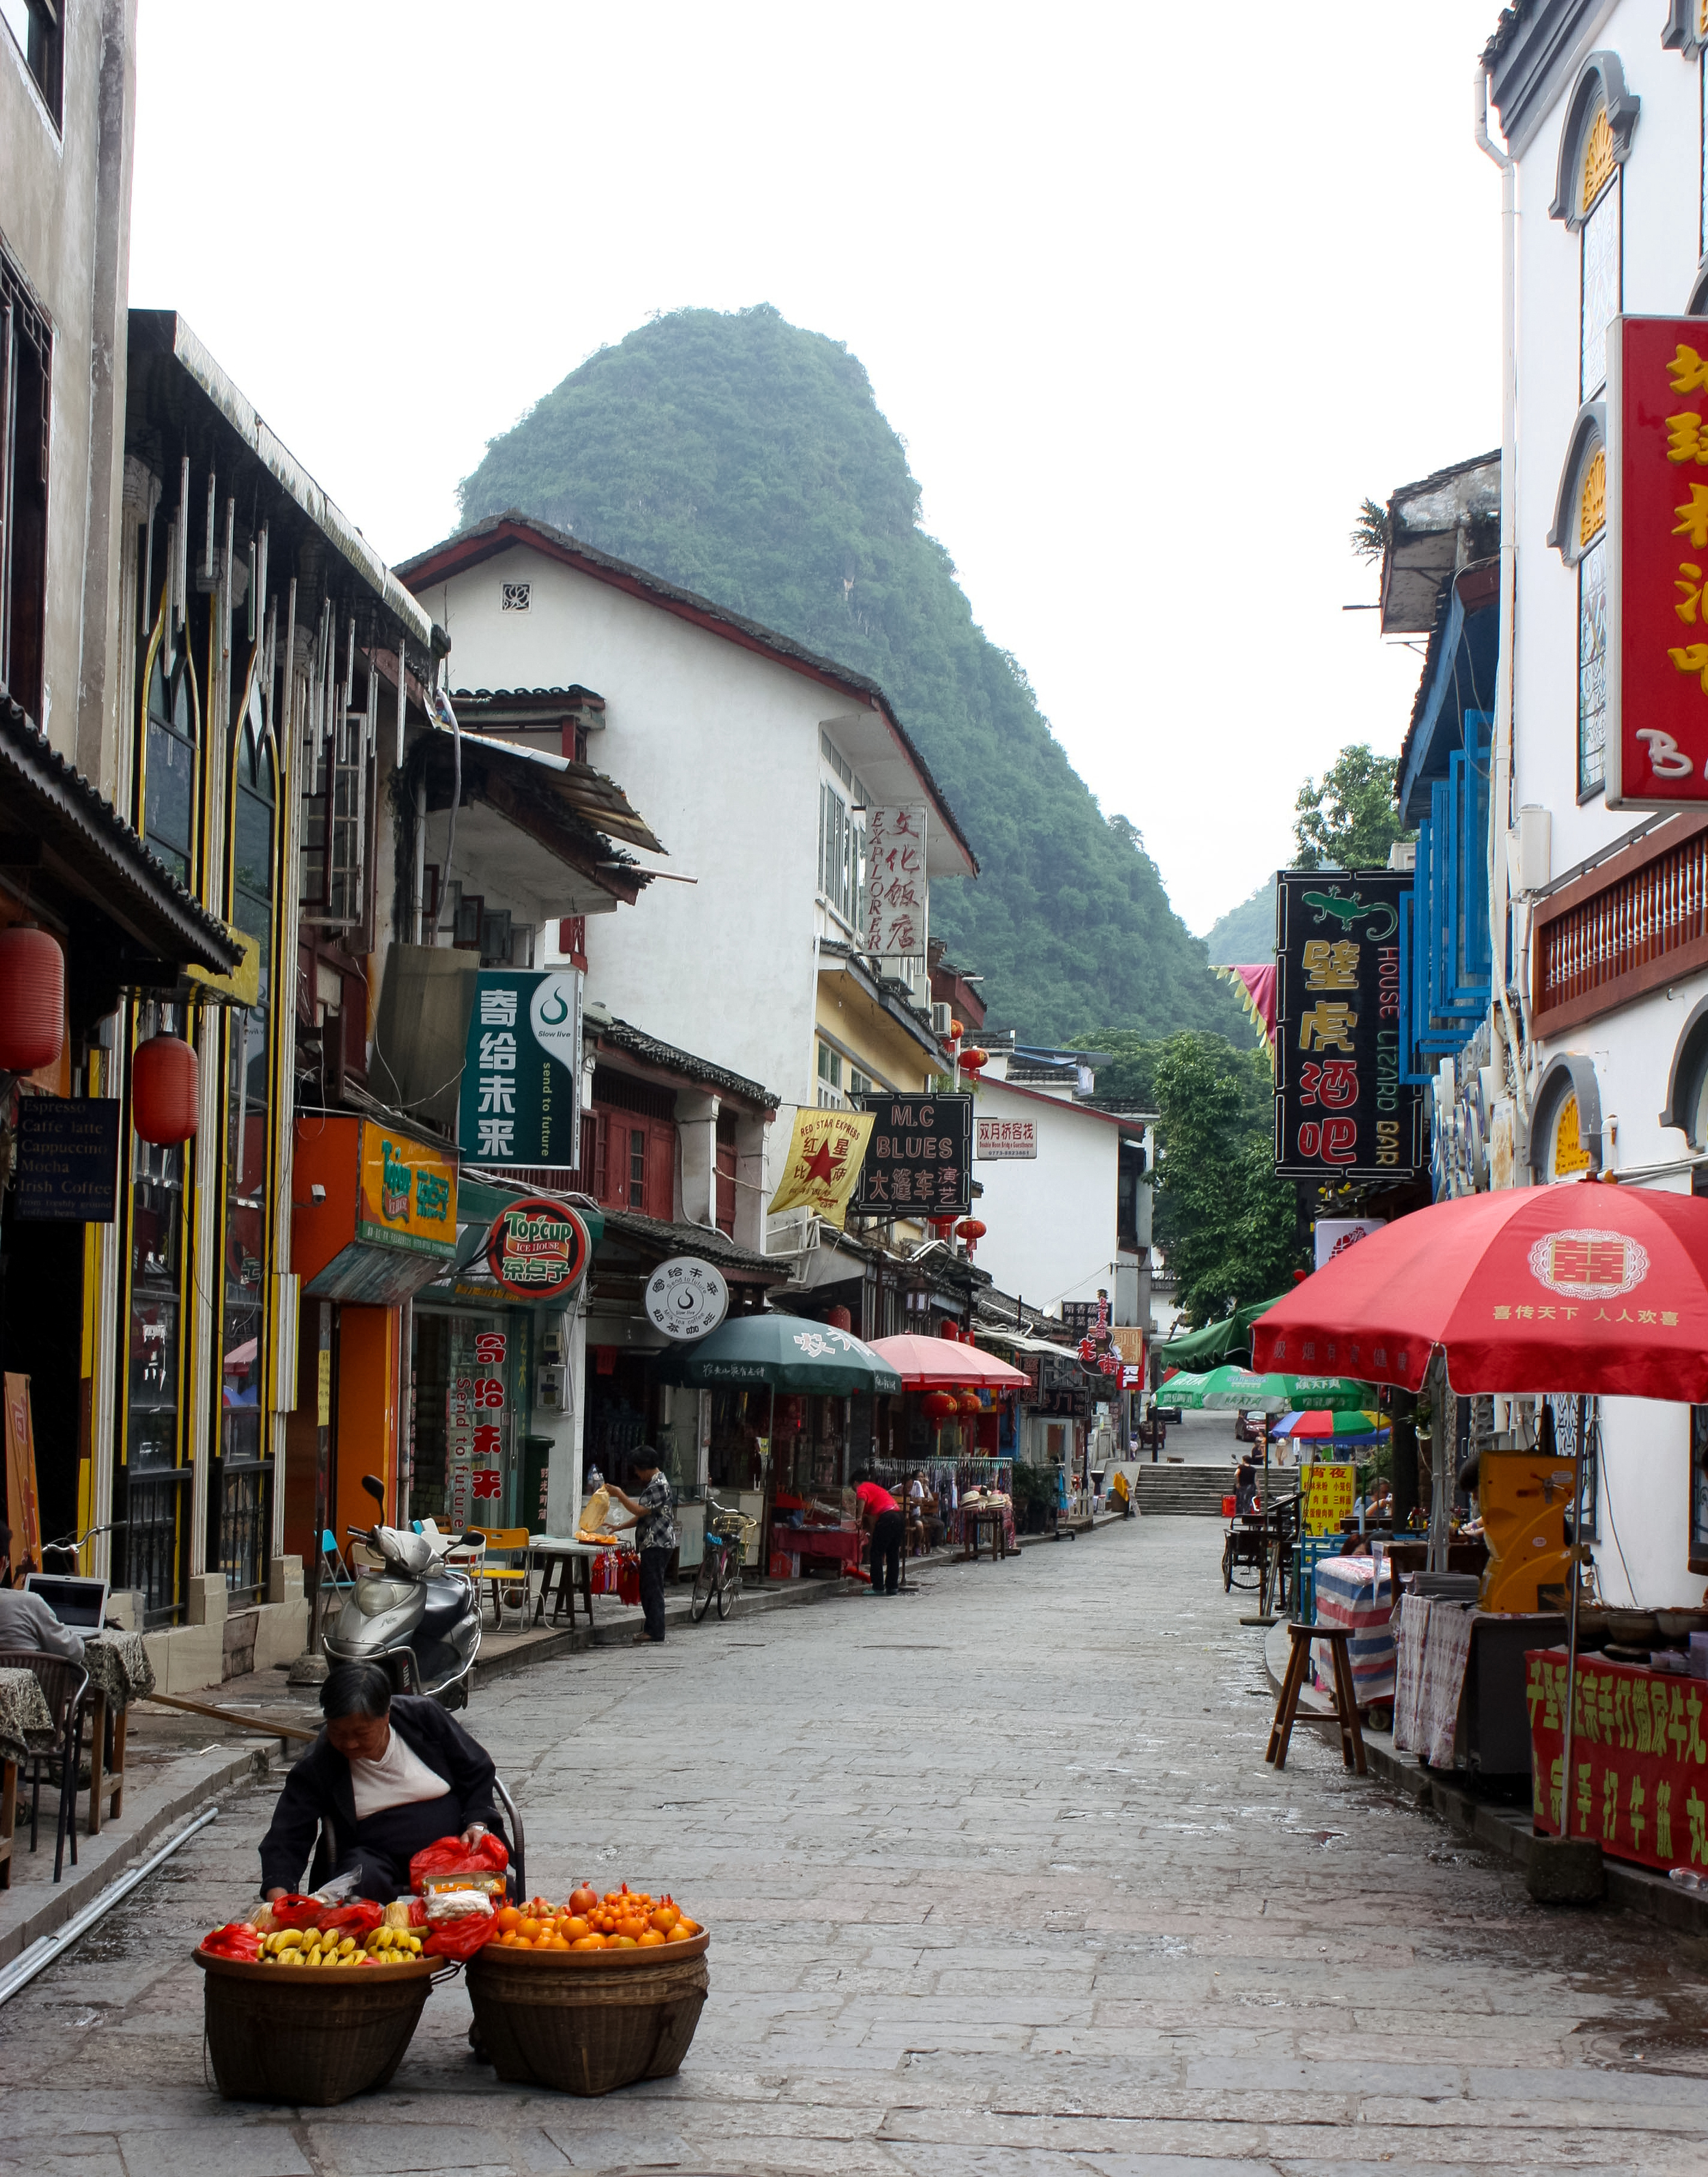 West Street, Yangshuo, China